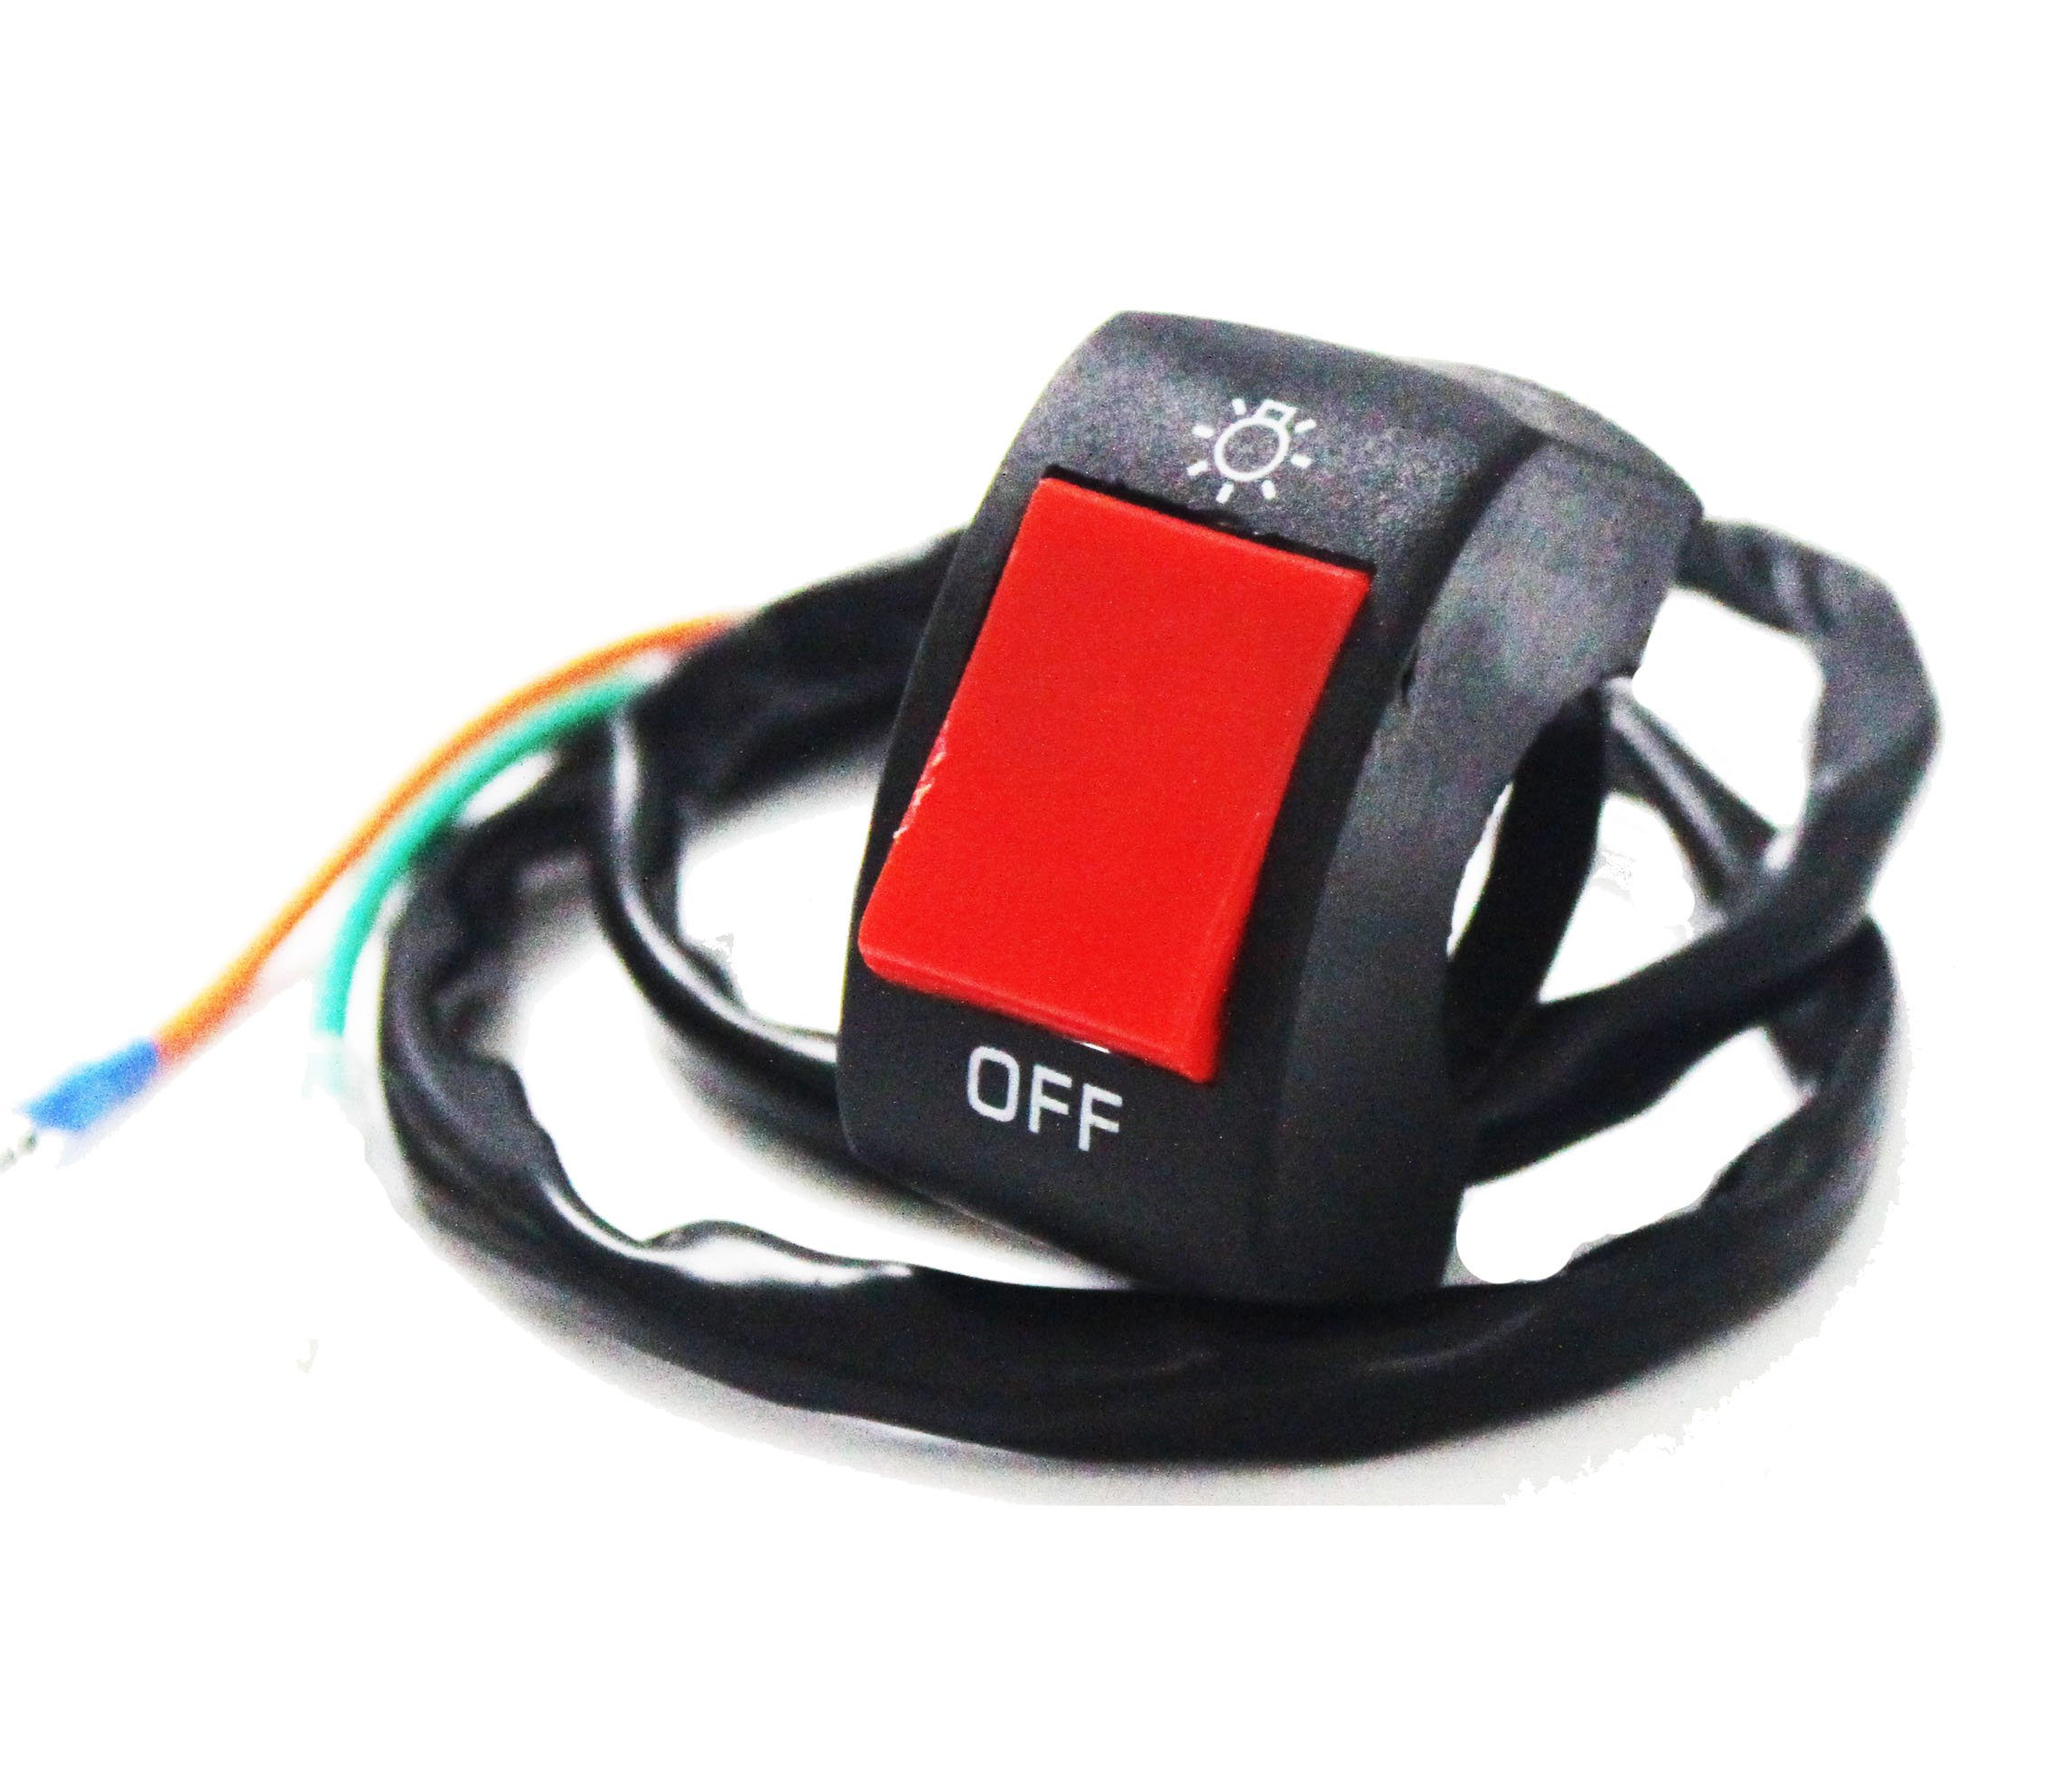 Ourbest Handlebar Mounting Switch Button Bicycle Motorcycle Tuning Part for U5 U7 U2 LED Headlight Scooter Electrombile by Ourbest (Image #1)